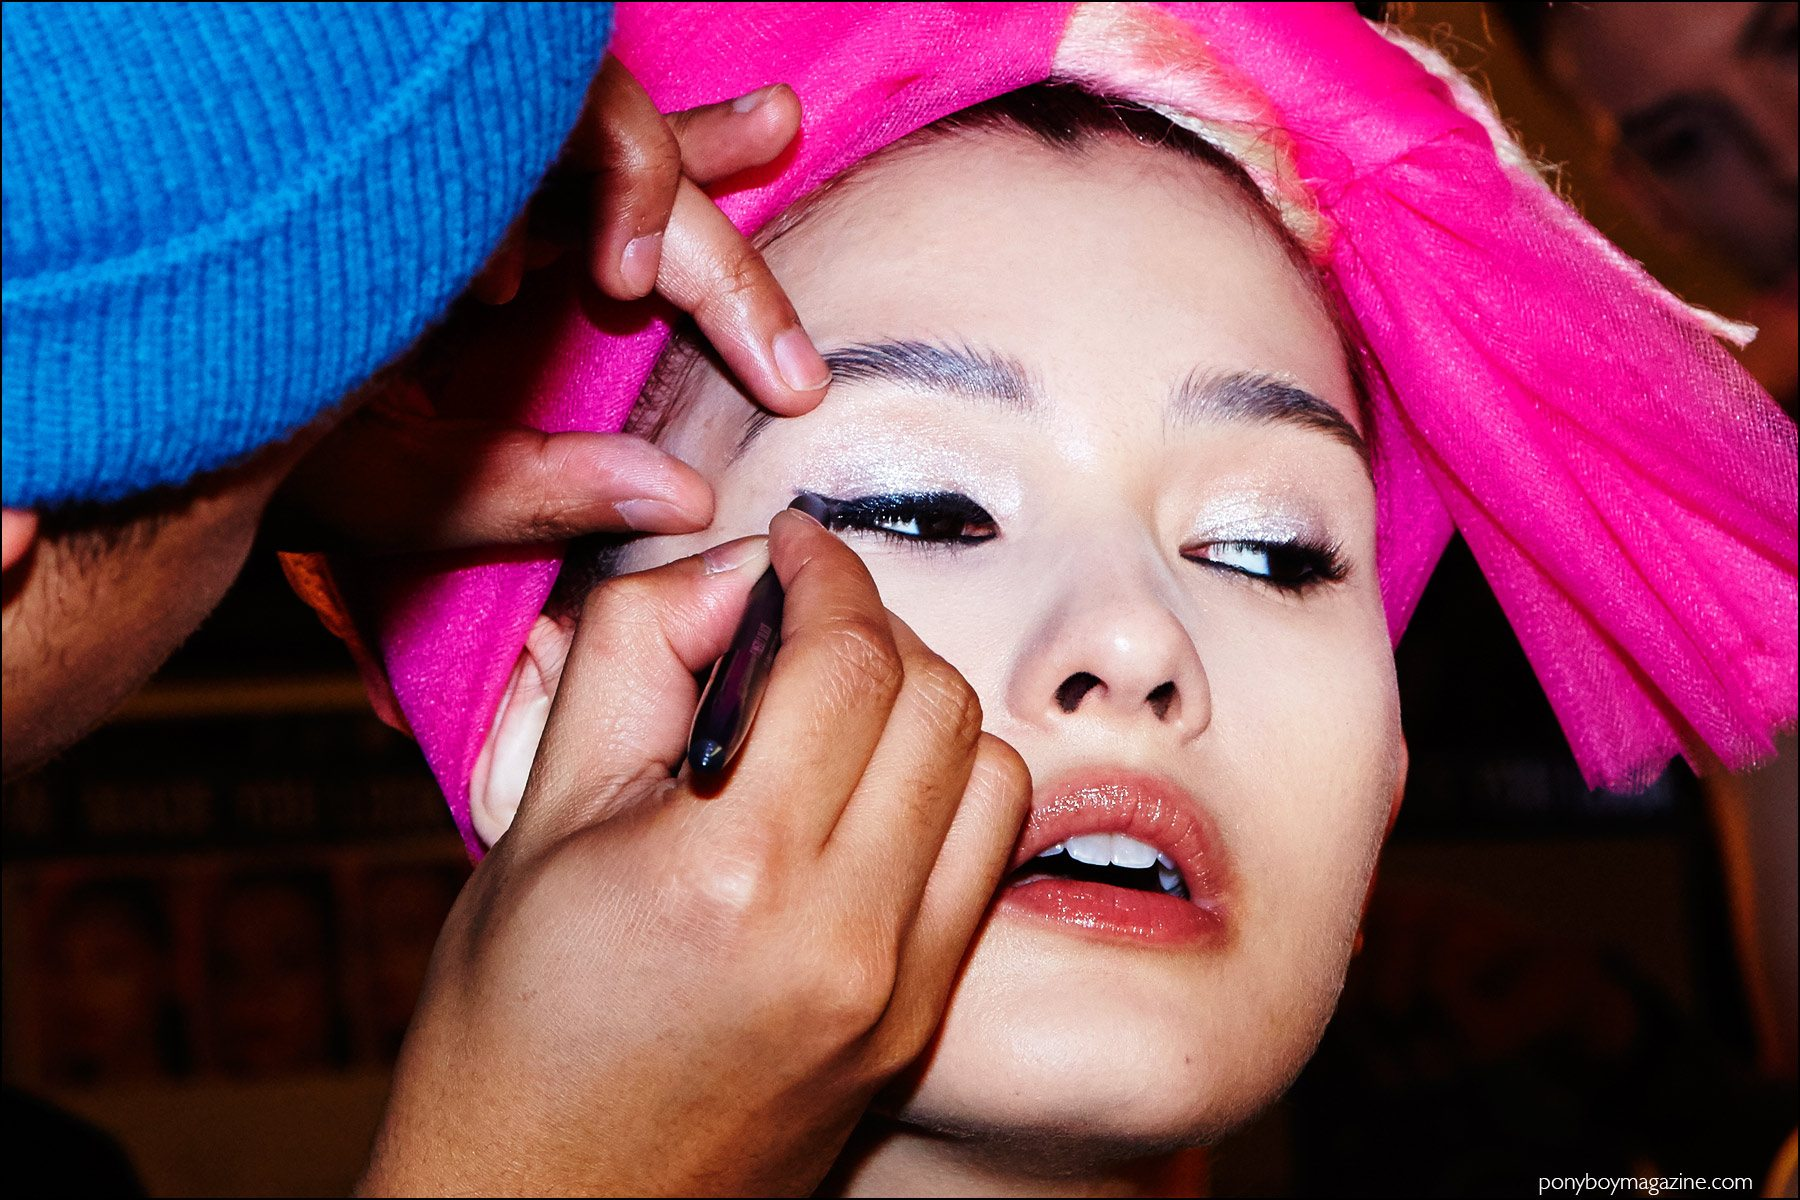 A model gets her eye makeup applied by a MAC cosmetics artist, backstage at The Blonds F/W16 womenswear show. Photography by Alexander Thompson for Ponyboy magazine NY.